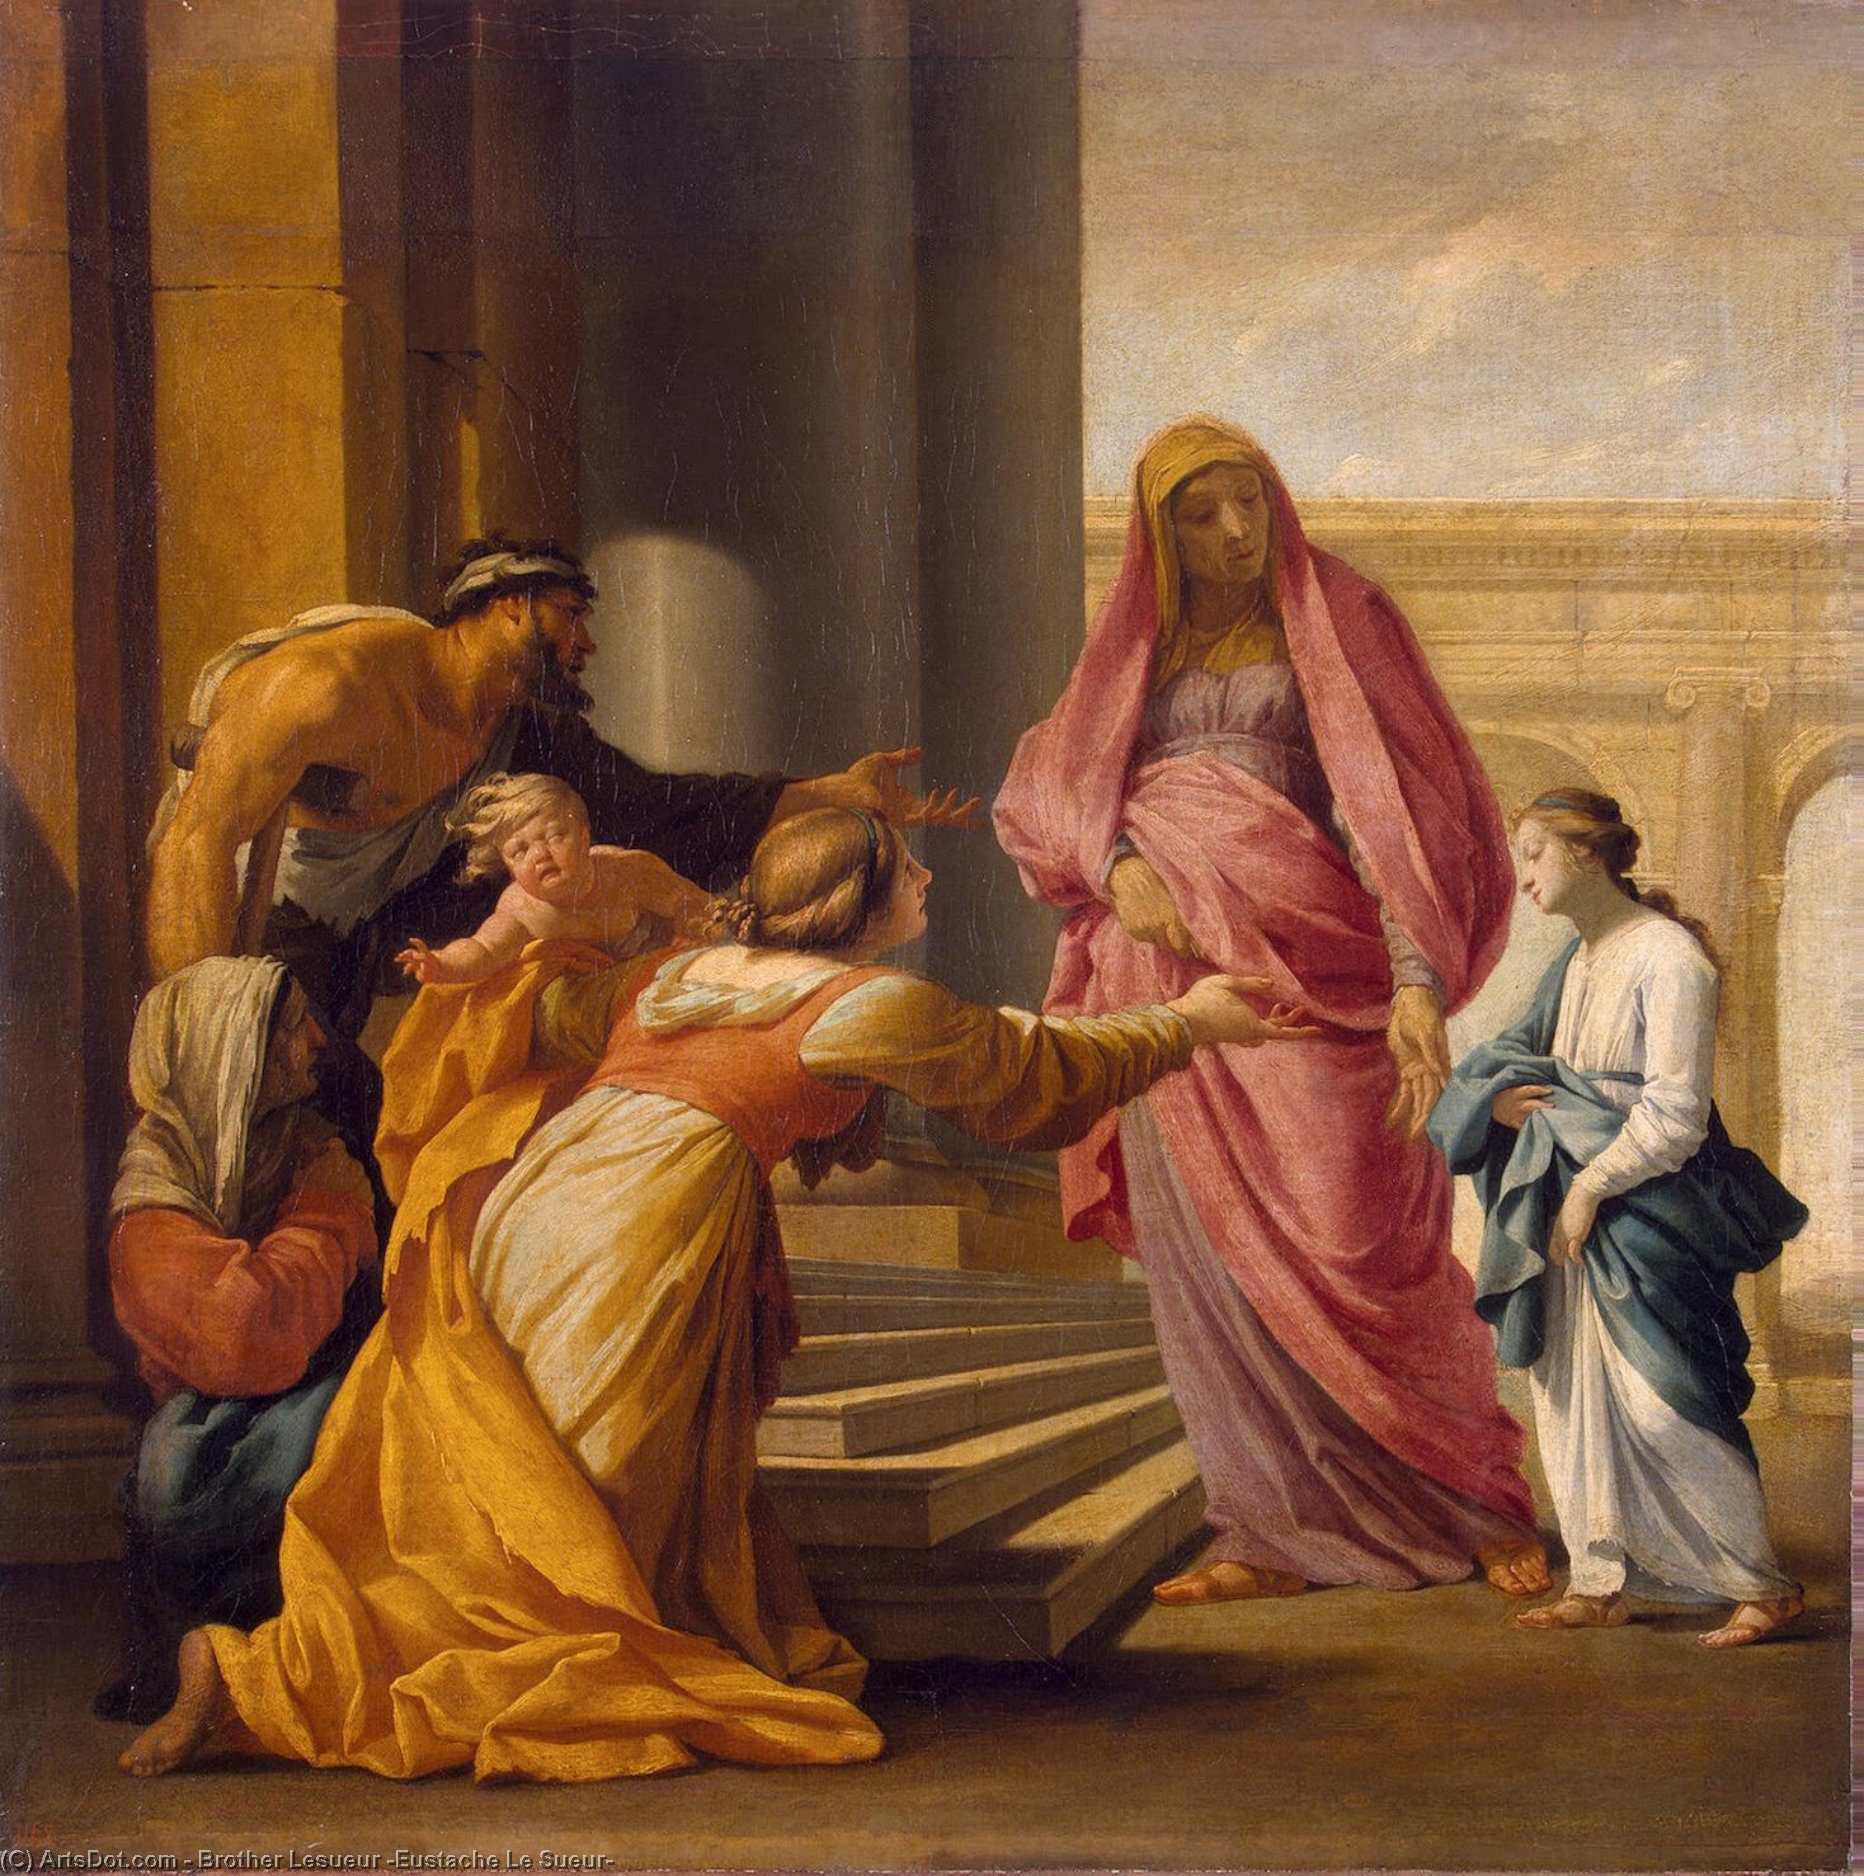 Wikioo.org - The Encyclopedia of Fine Arts - Painting, Artwork by Brother Lesueur (Eustache Le Sueur) - Presentation of the Virgin